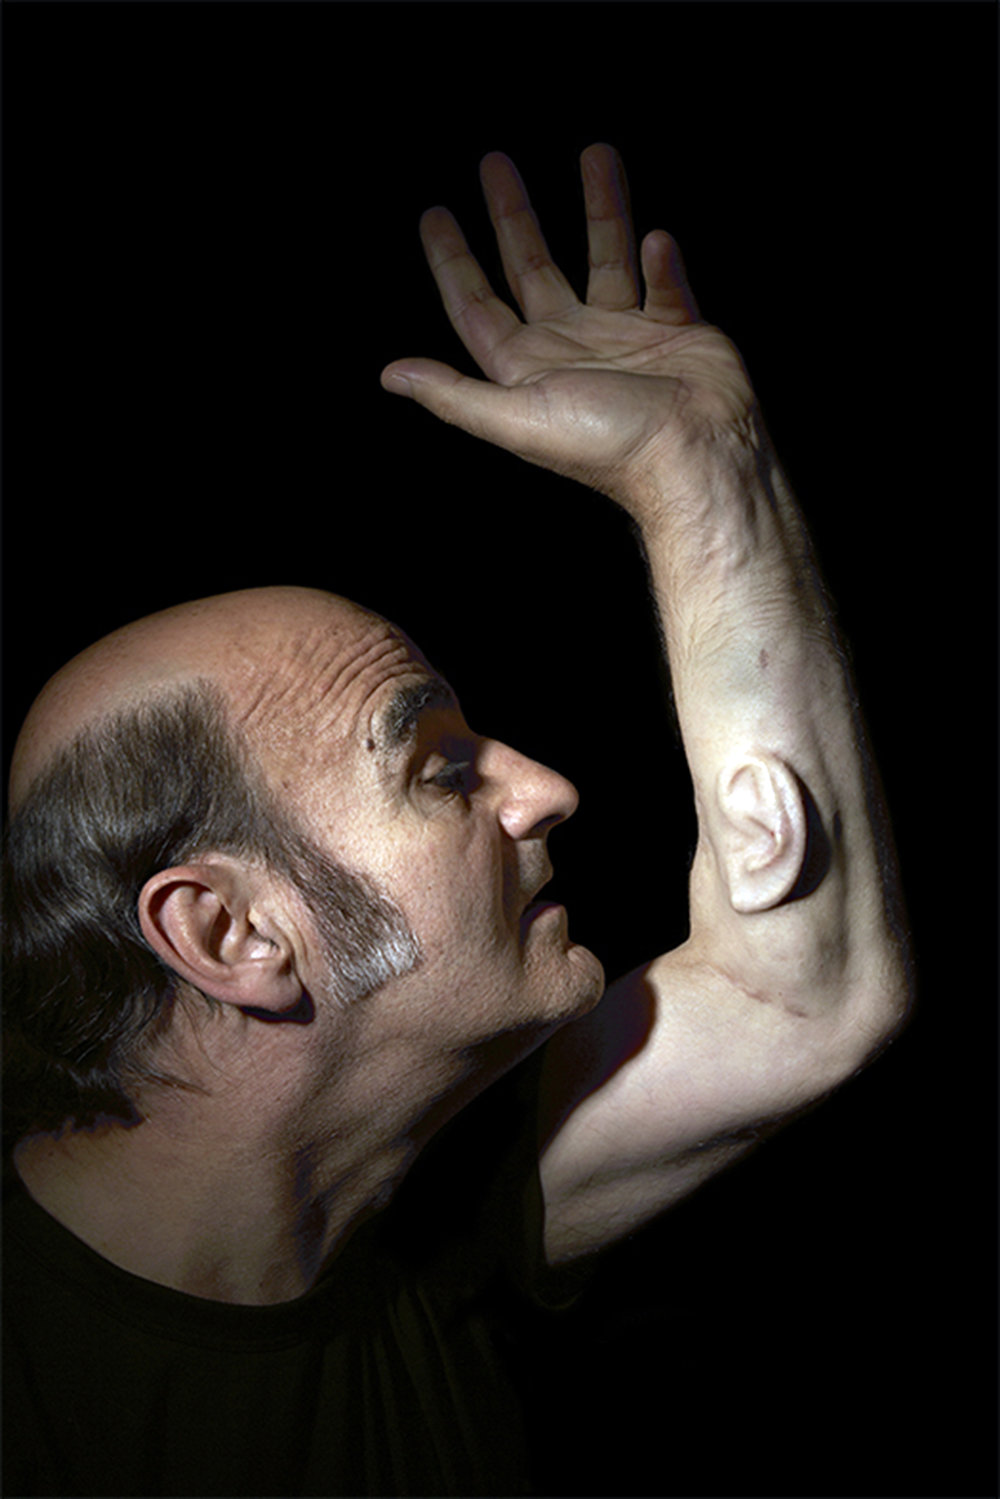 Stelarc with a surgically implanted ear in his arm.